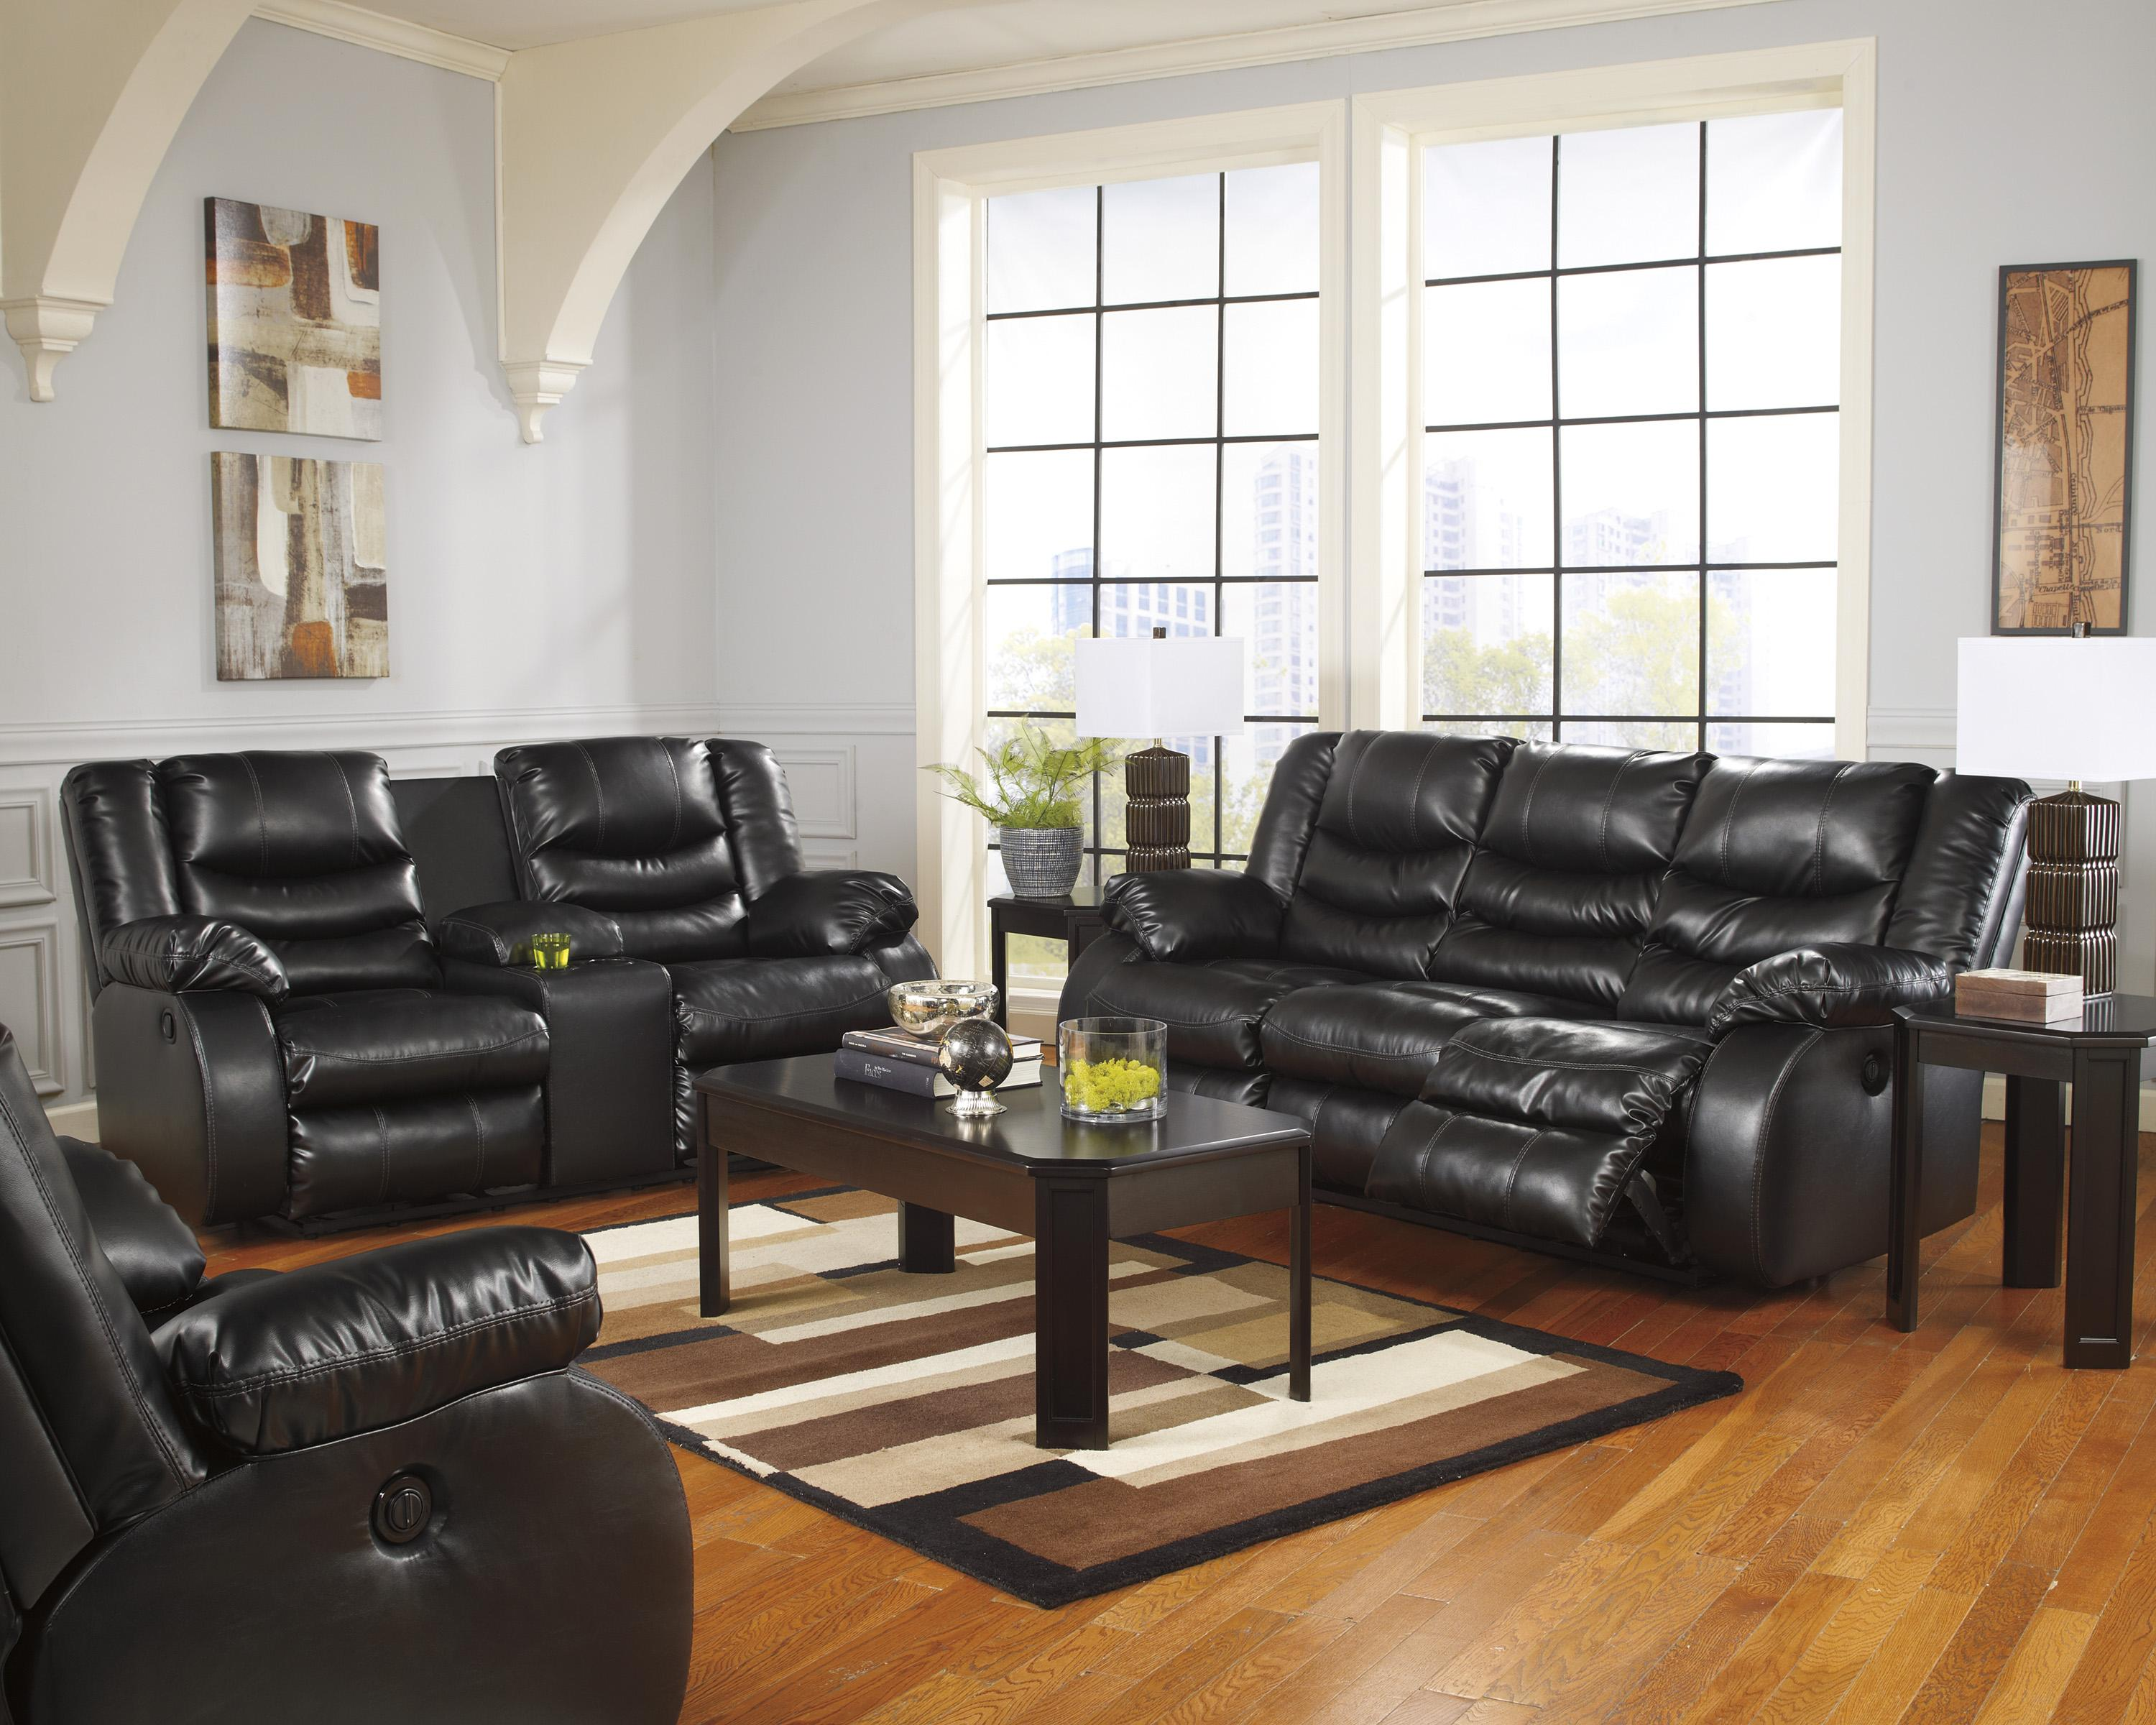 Ashley/Benchcraft Linebacker DuraBlend - Black Reclining Living Room Group - Item Number: 95202 Living Room Group 3